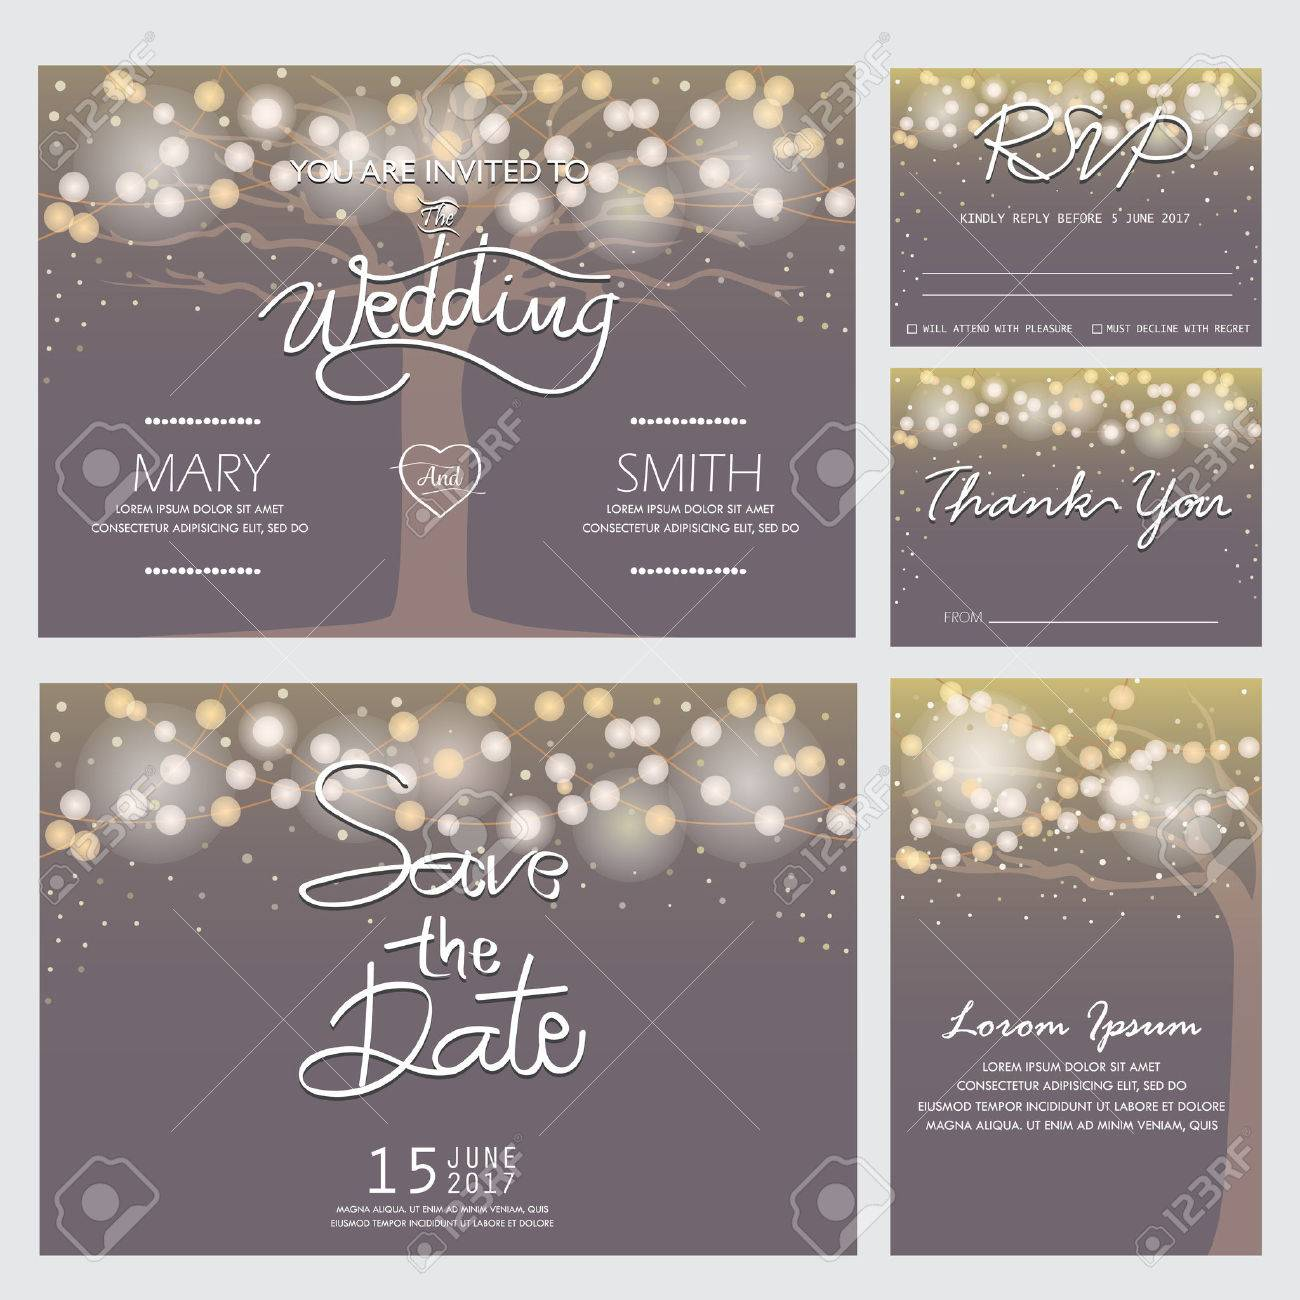 wedding invitation, RSVP, and Thank you card templates,light and tree concept. can be use for party invitation, banner, web page design element or holiday greeting card. vector illustration - 51916906